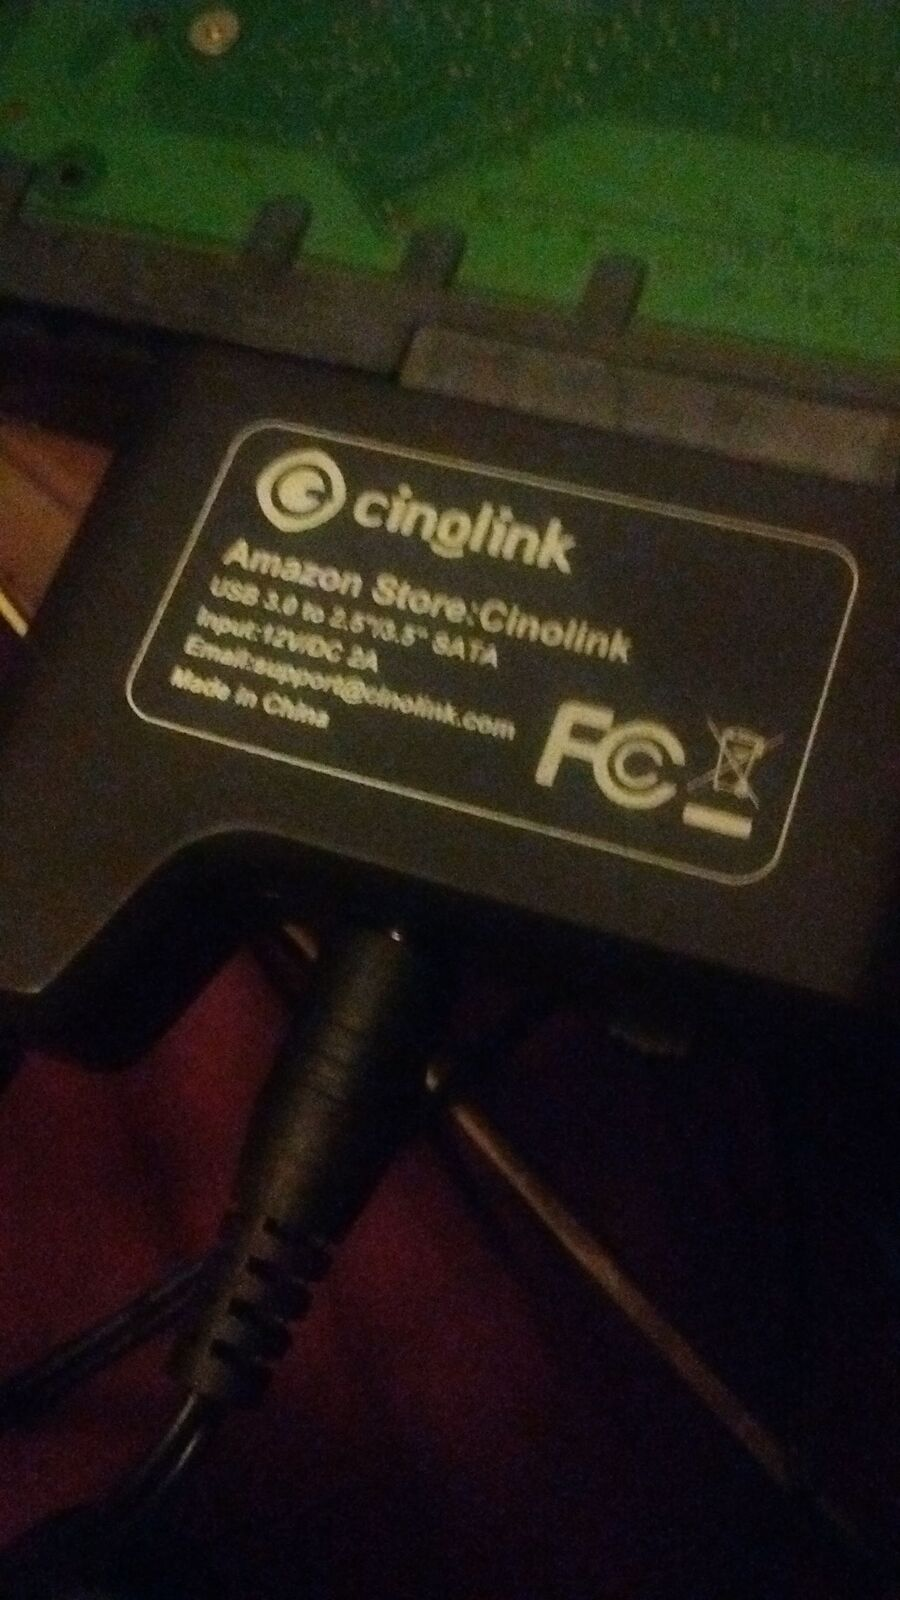 Reviews: Cinolink USB 3 0 to SATA Converter Adapter for 2 5